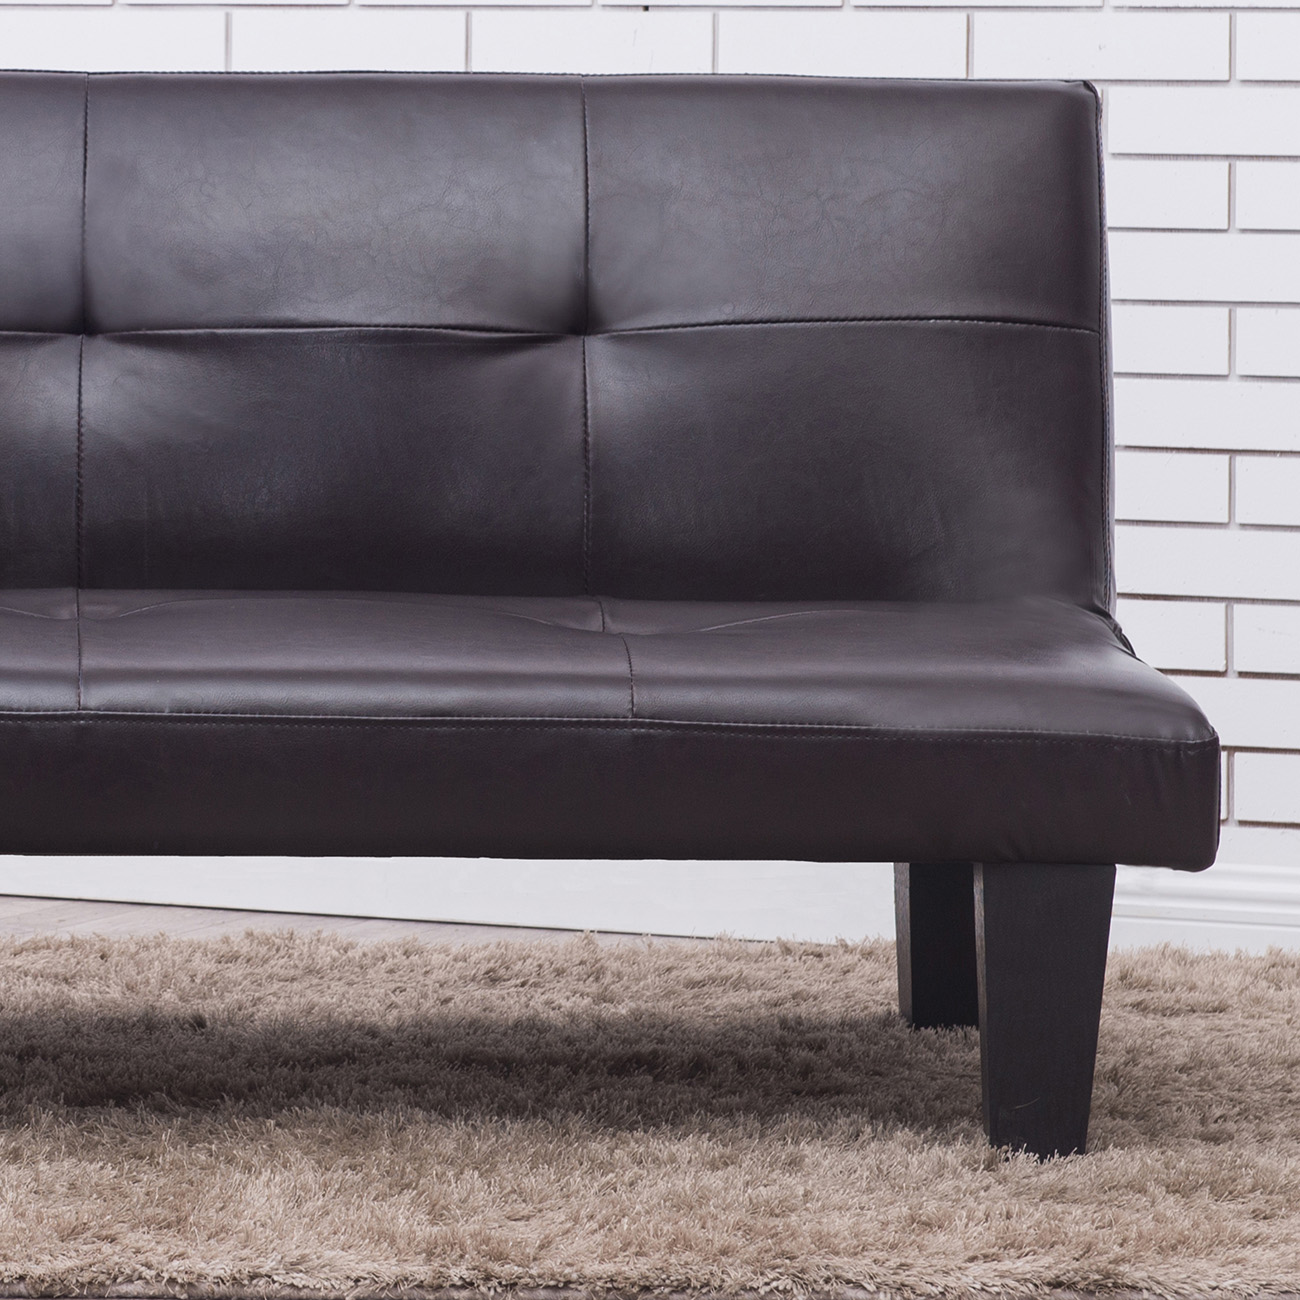 New Futon Sofa Bed Convertible Couch Living Room Loveseat Dorm Sleeper Lounge Ebay